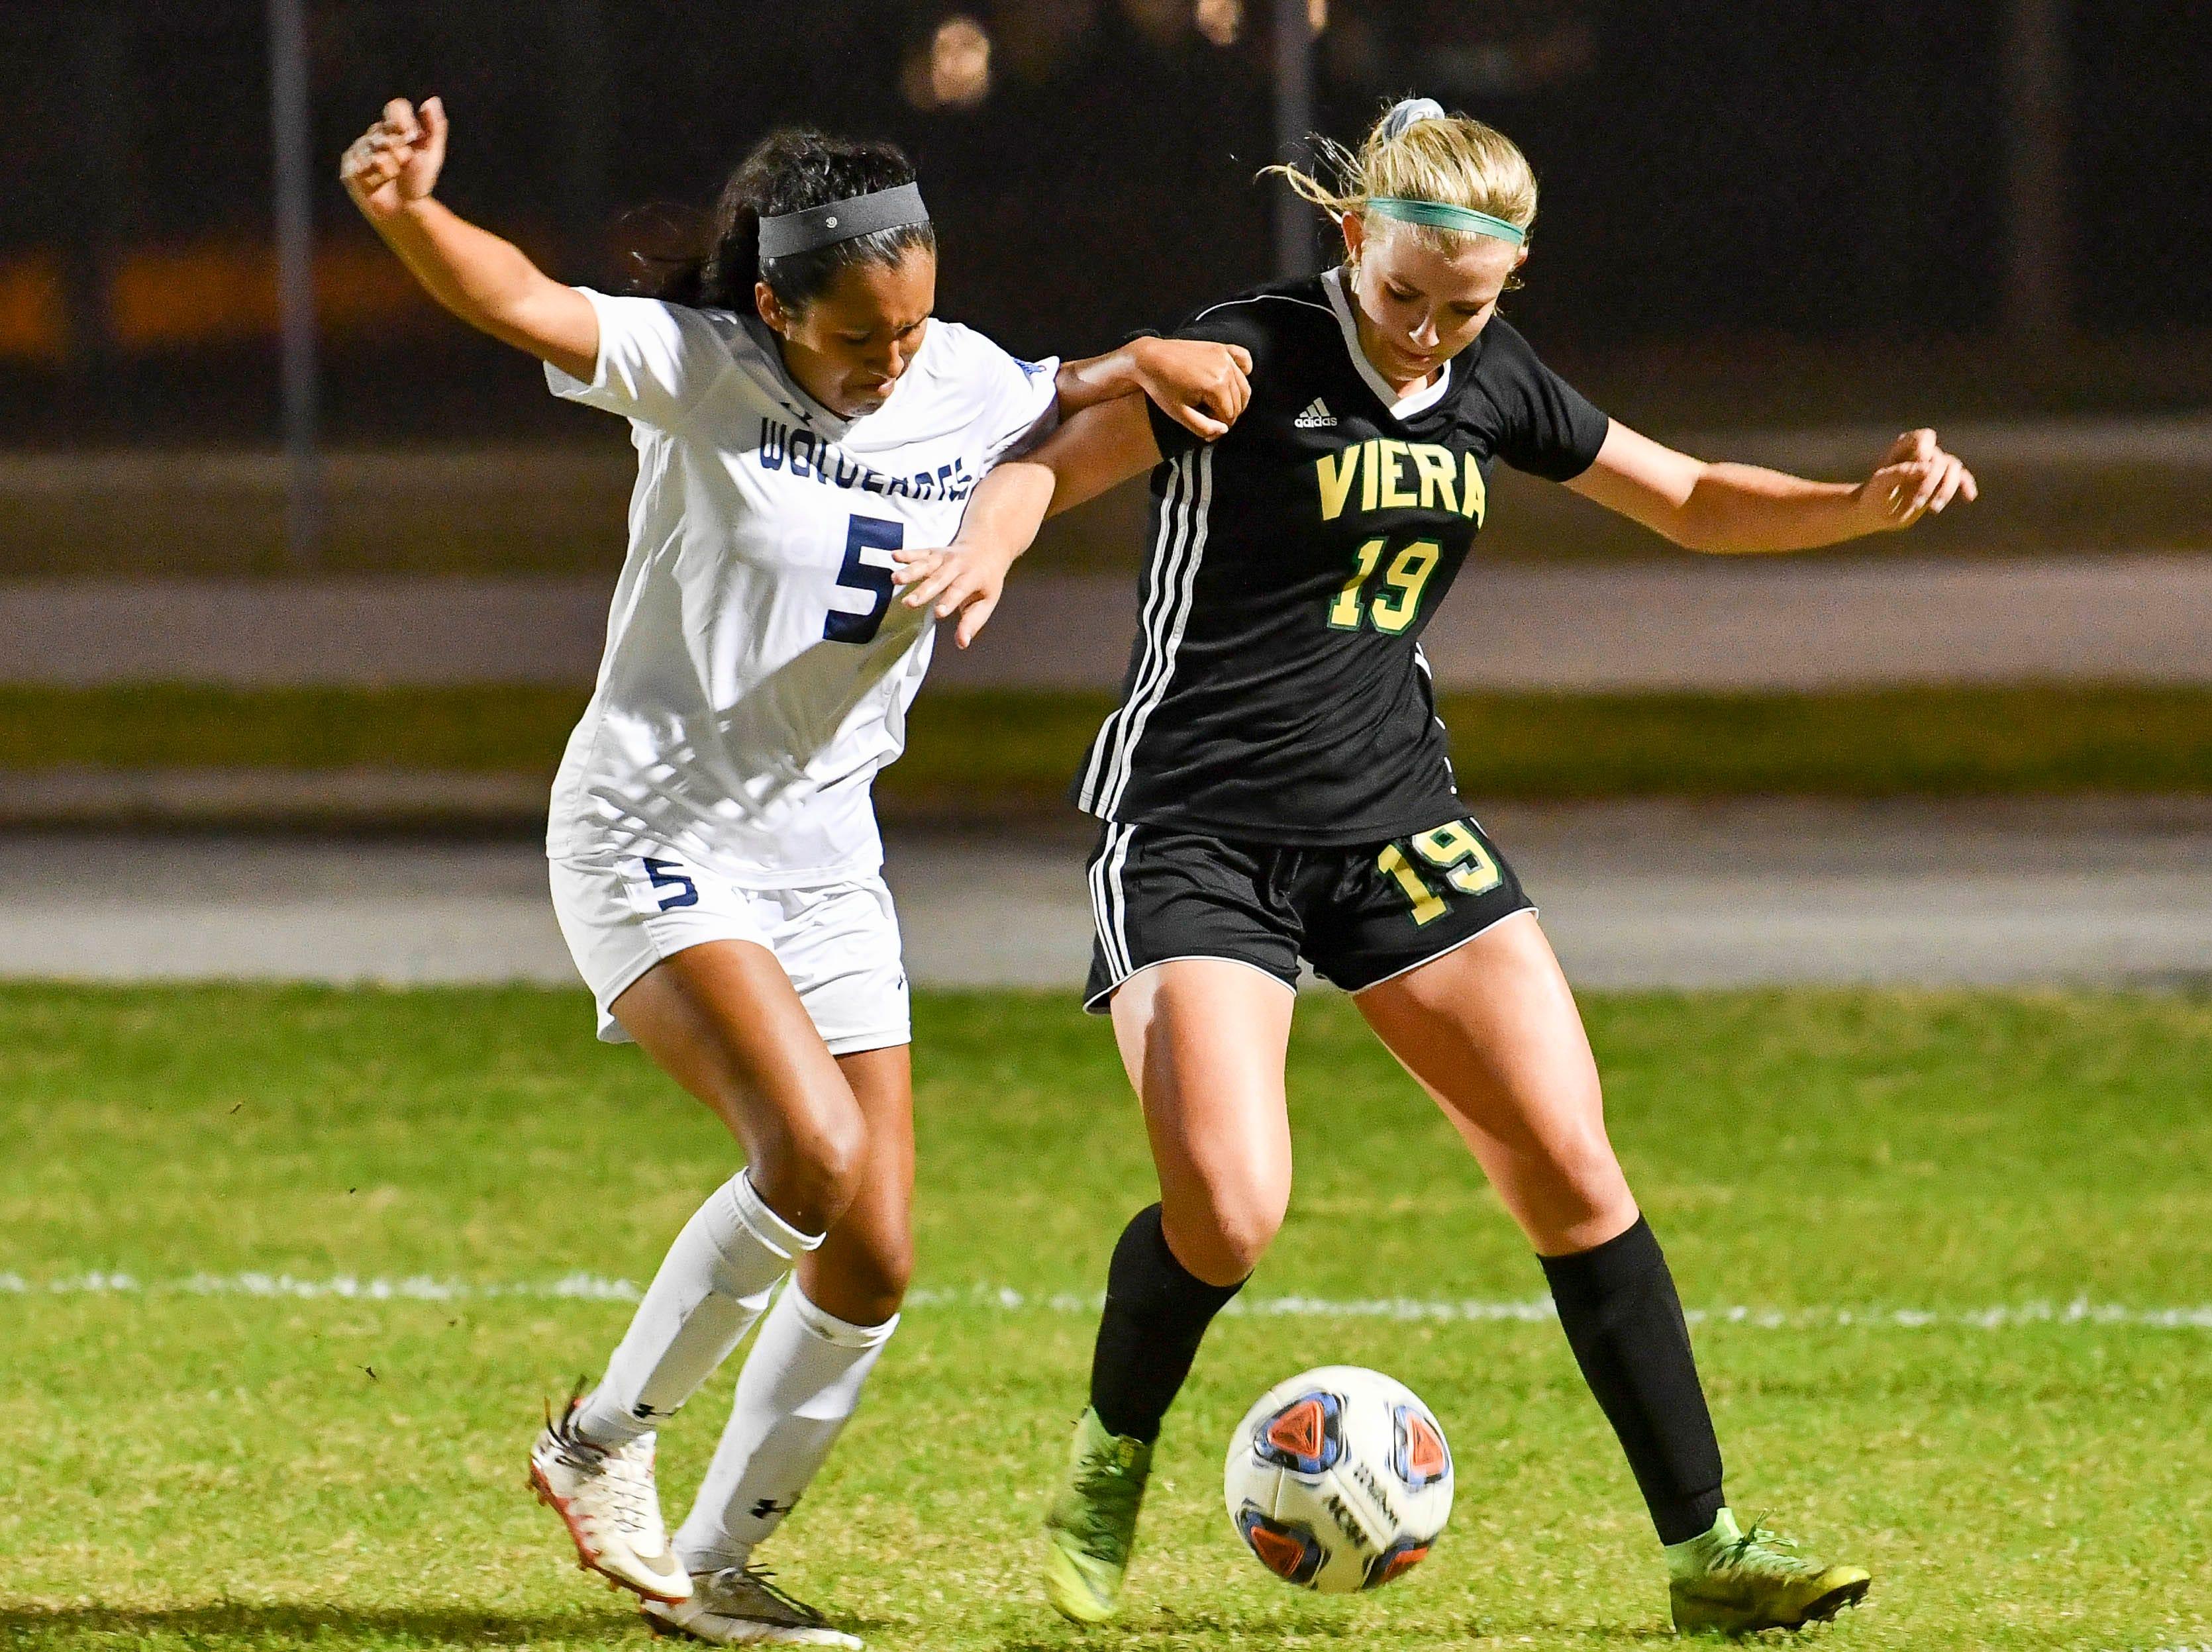 Kristhine Verastegui of Windermere battles with Mai Jensen of Viera during Tuesday's Regional Quarterfinal game at Viera High School